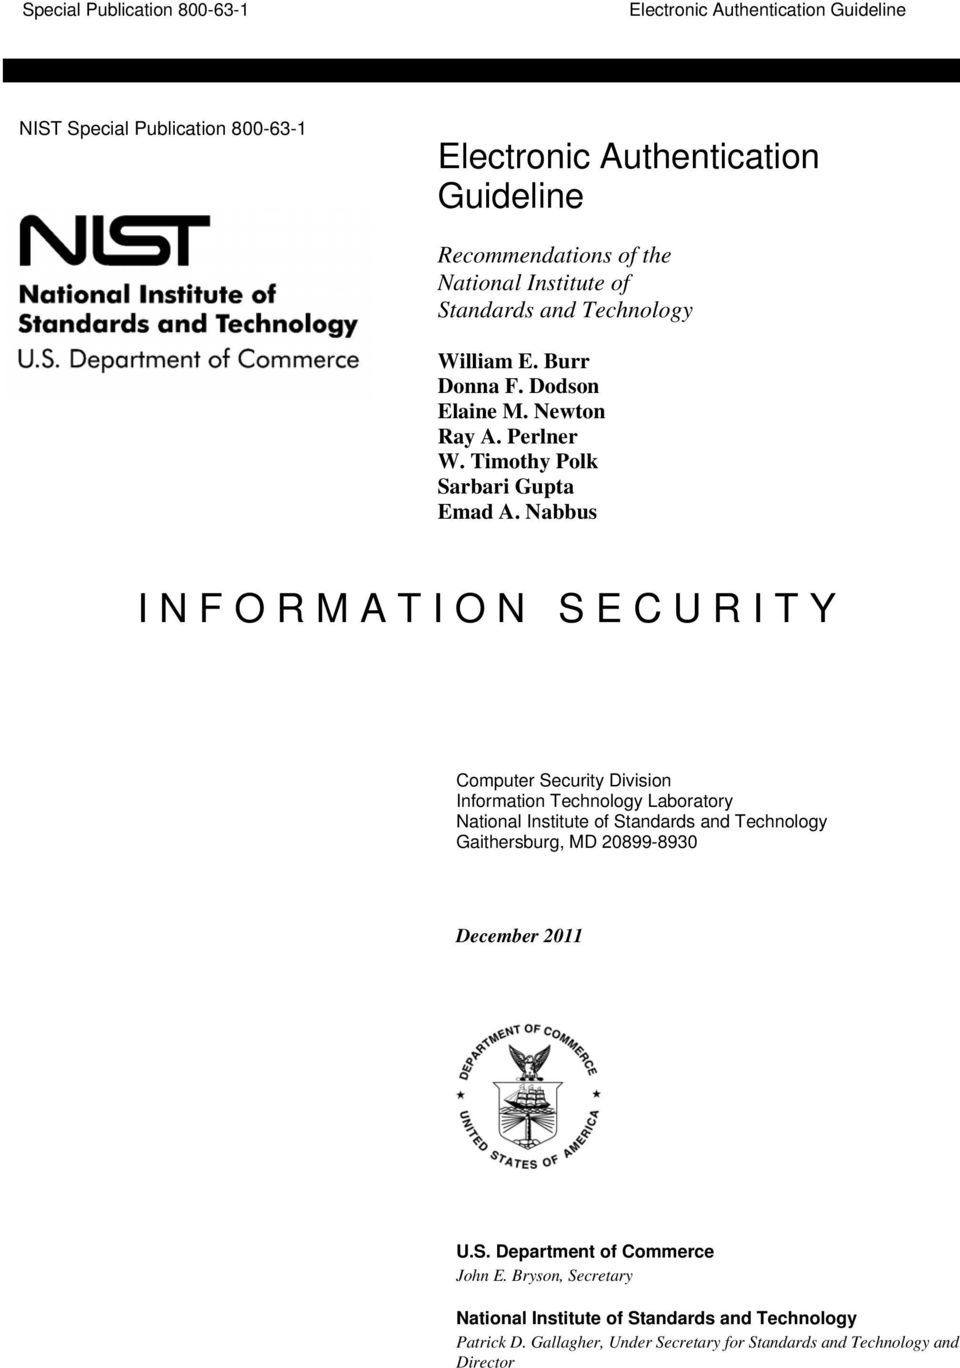 Nabbus I N F O R M A T I O N S E C U R I T Y Computer Security Division Information Technology Laboratory National Institute of Standards and Technology